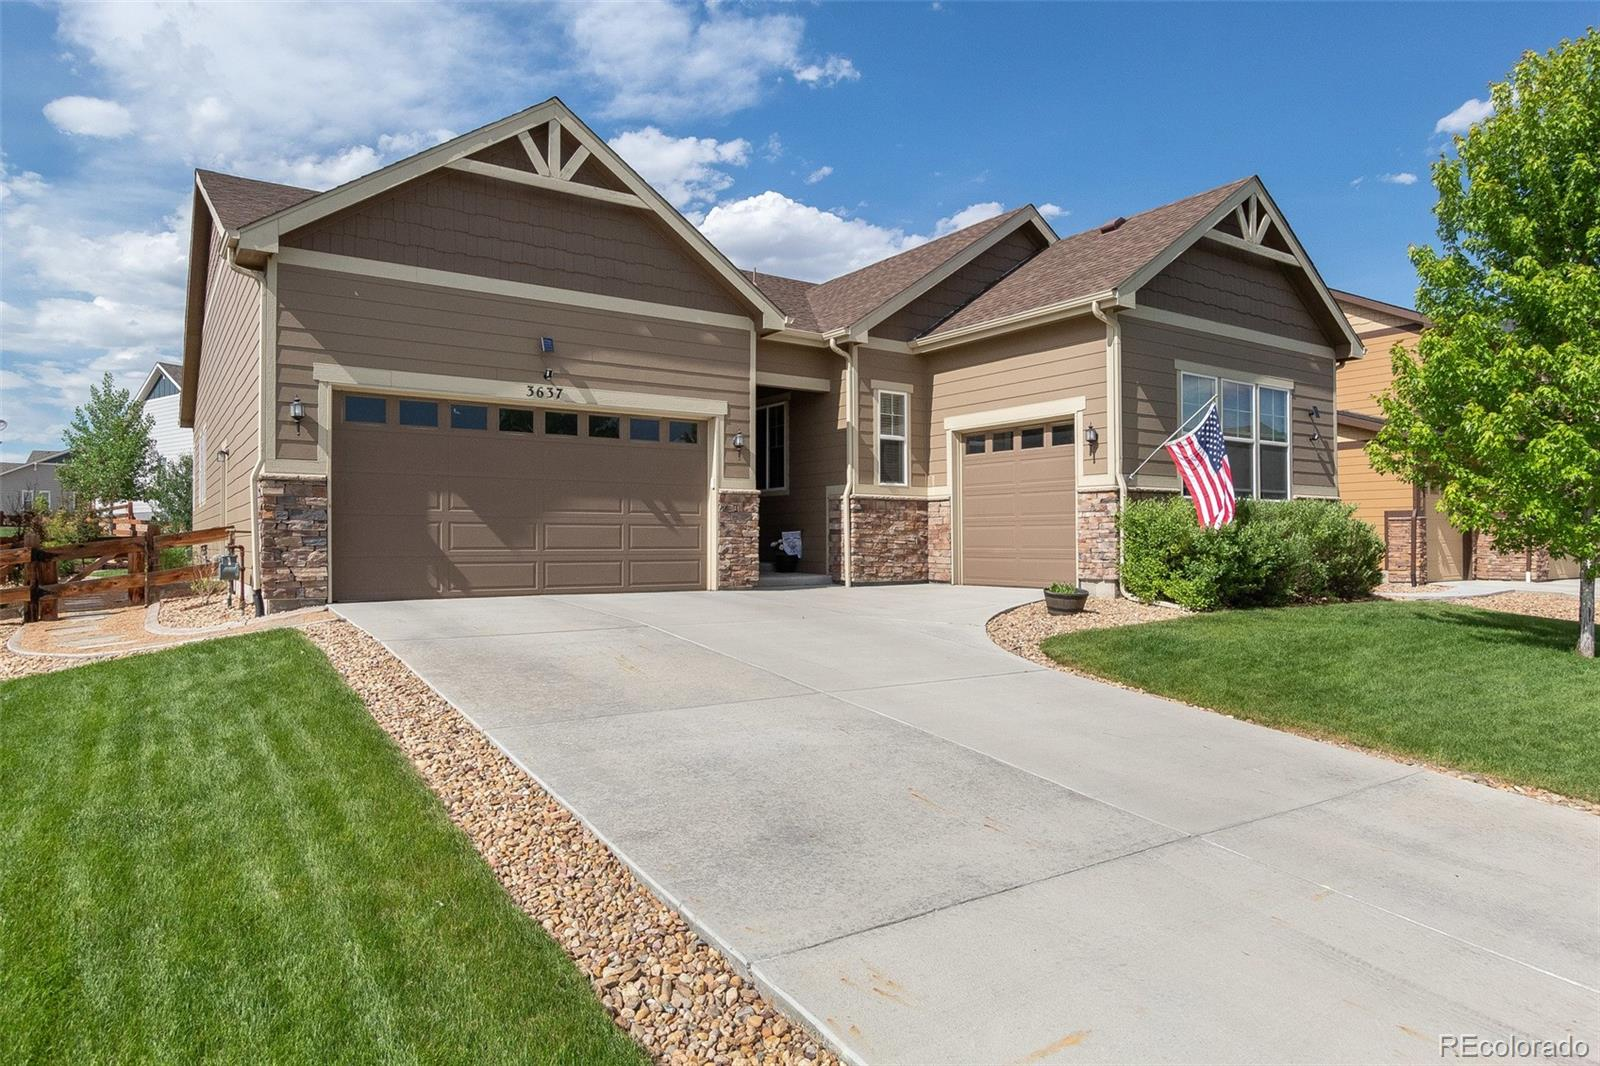 3637 Schumann Place Property Photo - Mead, CO real estate listing